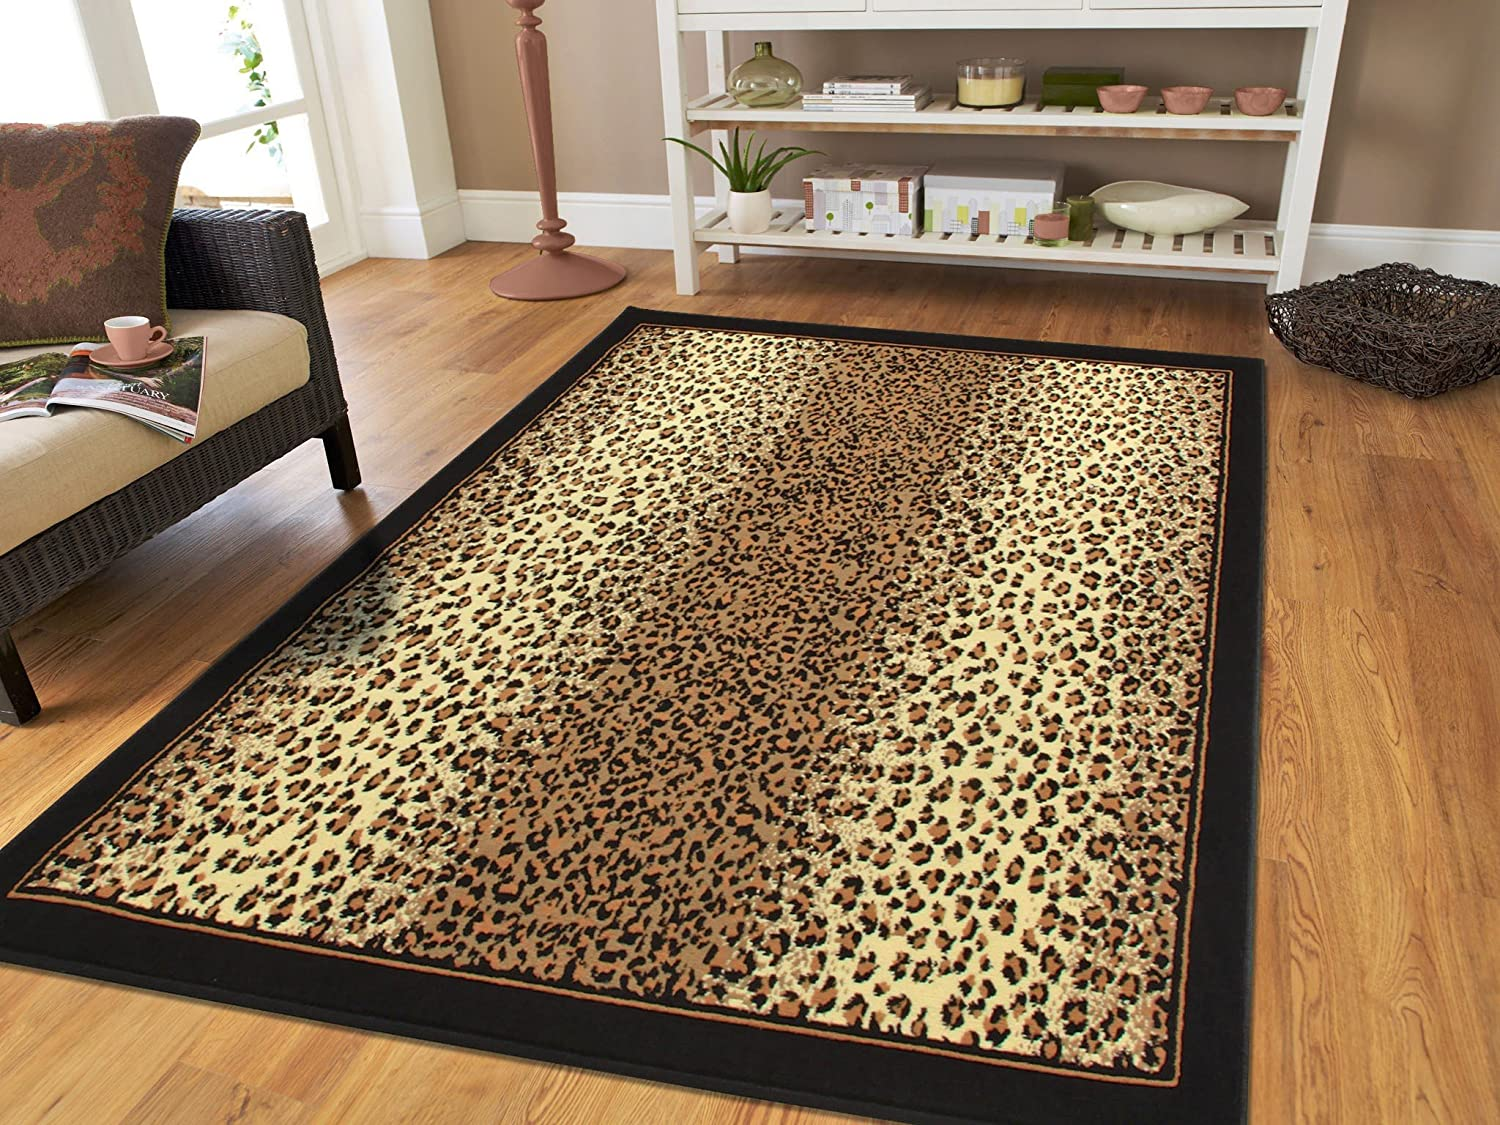 Amazon com  Large 8x11 Cheetah Rug Animal Print Rectangle Leopard Rugs  Contemporary 8x10 Rugs for Living Room Modern Animal Rugs  Large 8 x11   Rug  Kitchen  Amazon com  Large 8x11 Cheetah Rug Animal Print Rectangle Leopard  . Animal Print Living Room. Home Design Ideas